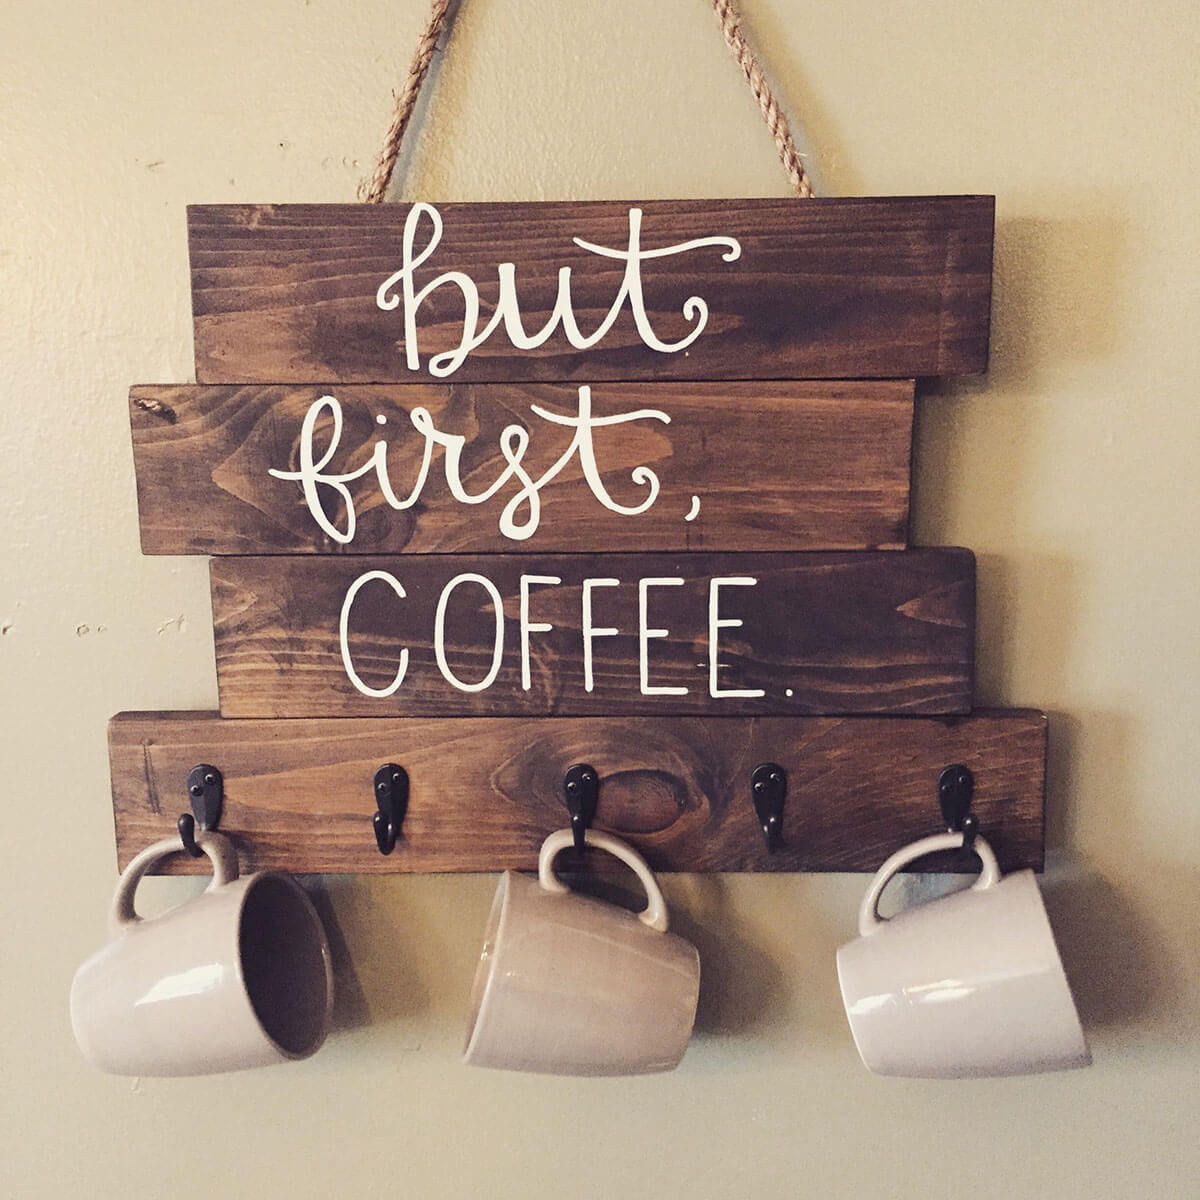 14 Creative Diy Mug Storage And